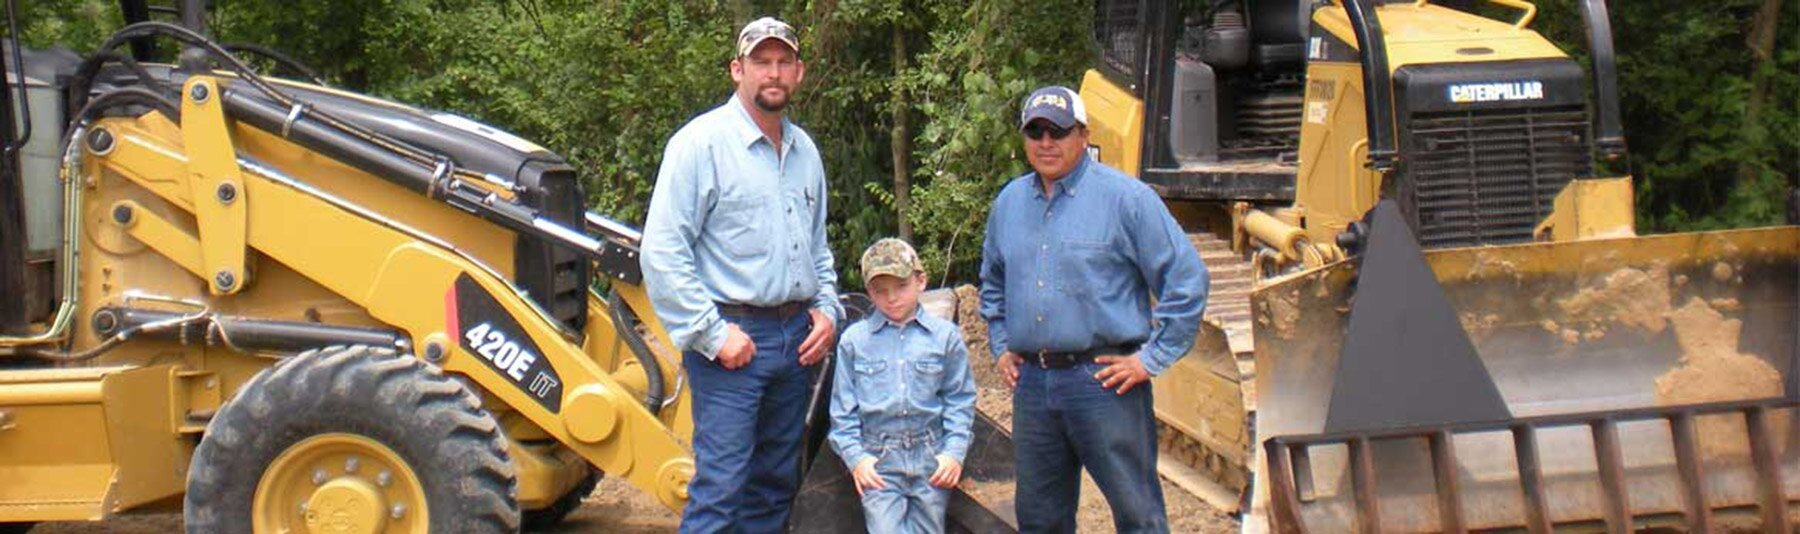 The Lamar Family | Owners of Sticks and Stones Trees